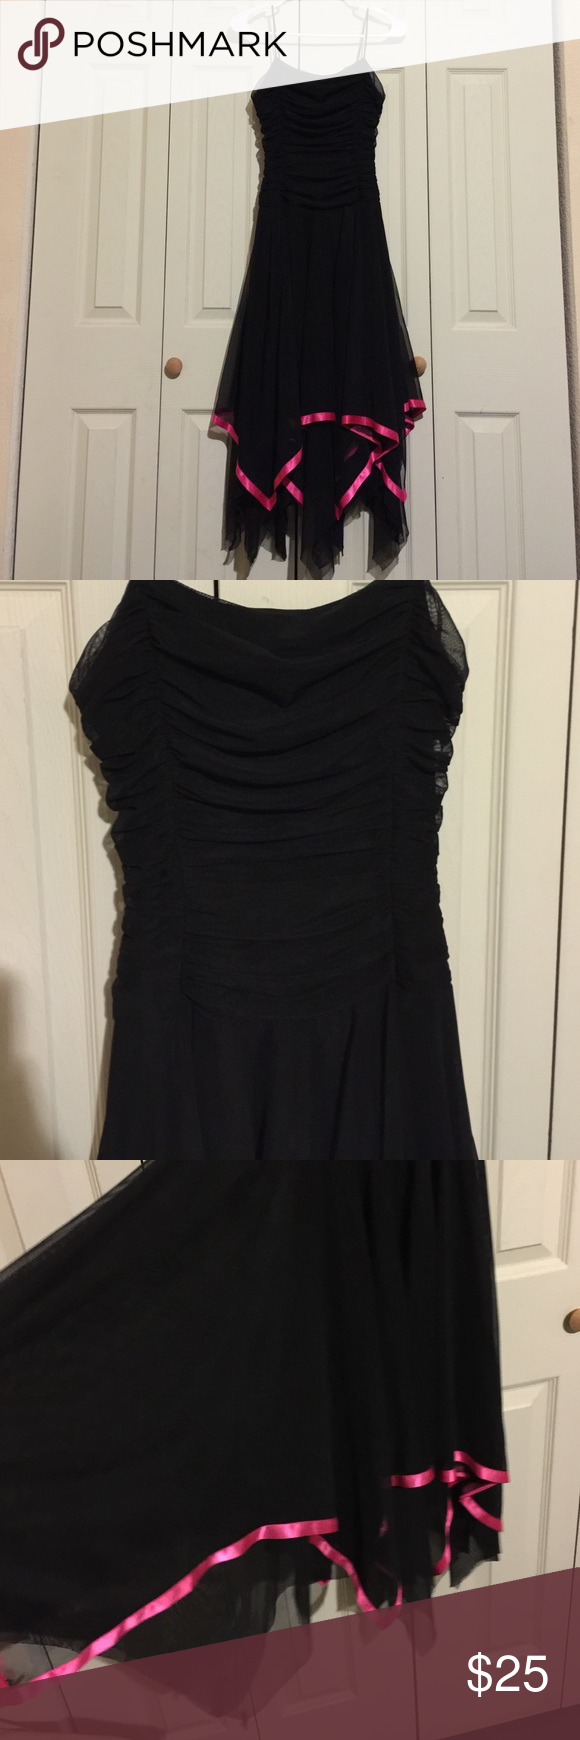 Black prom dress beautiful Size Medium 30% Polyester 60% Nylon Ynes Dresses Maxi